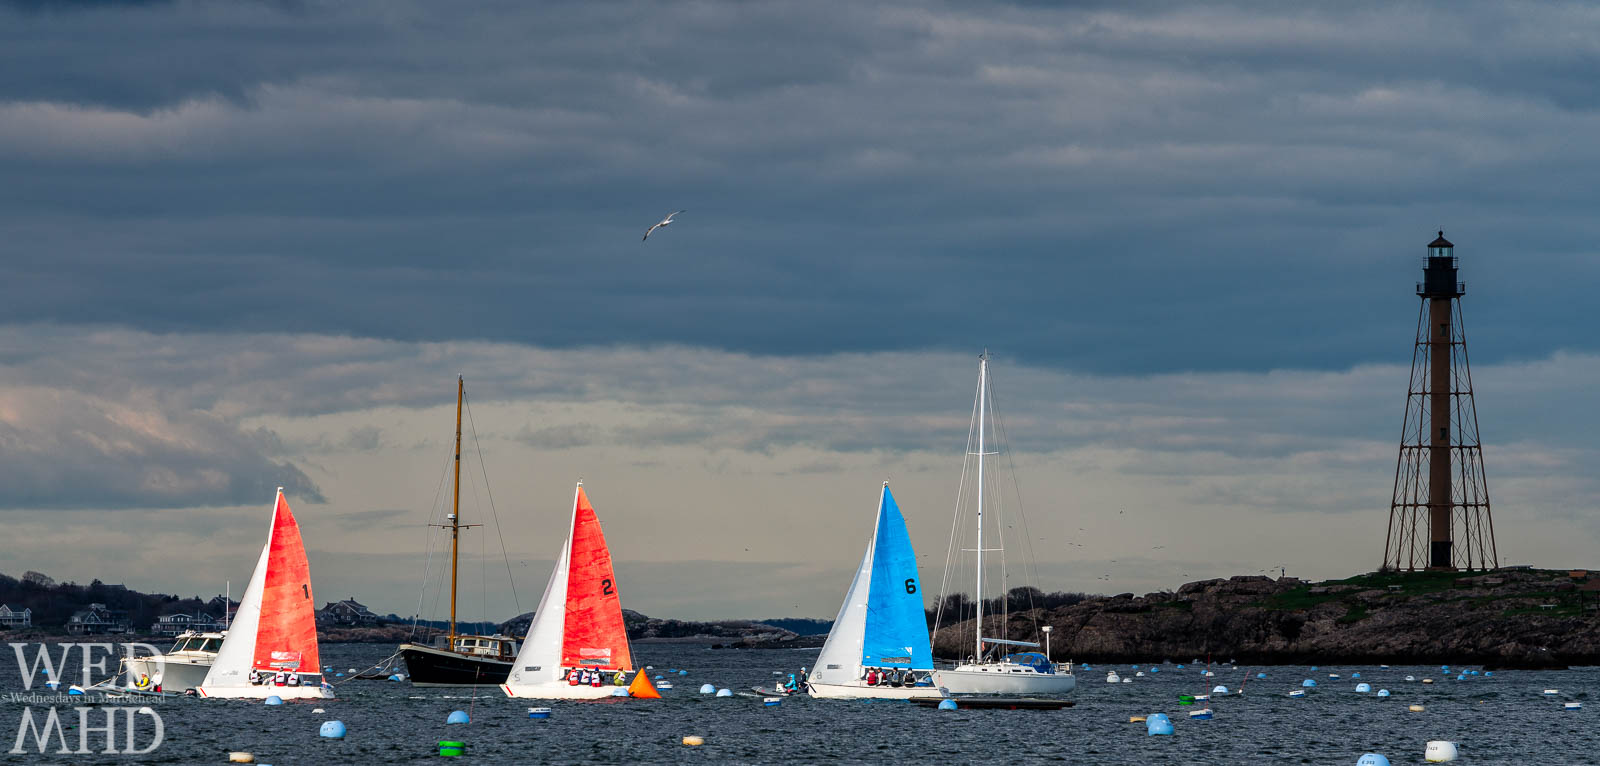 Three boats pass in front of Marblehead Light during the Jackson Cup race. I had one shot to capture this image I had envisioned.